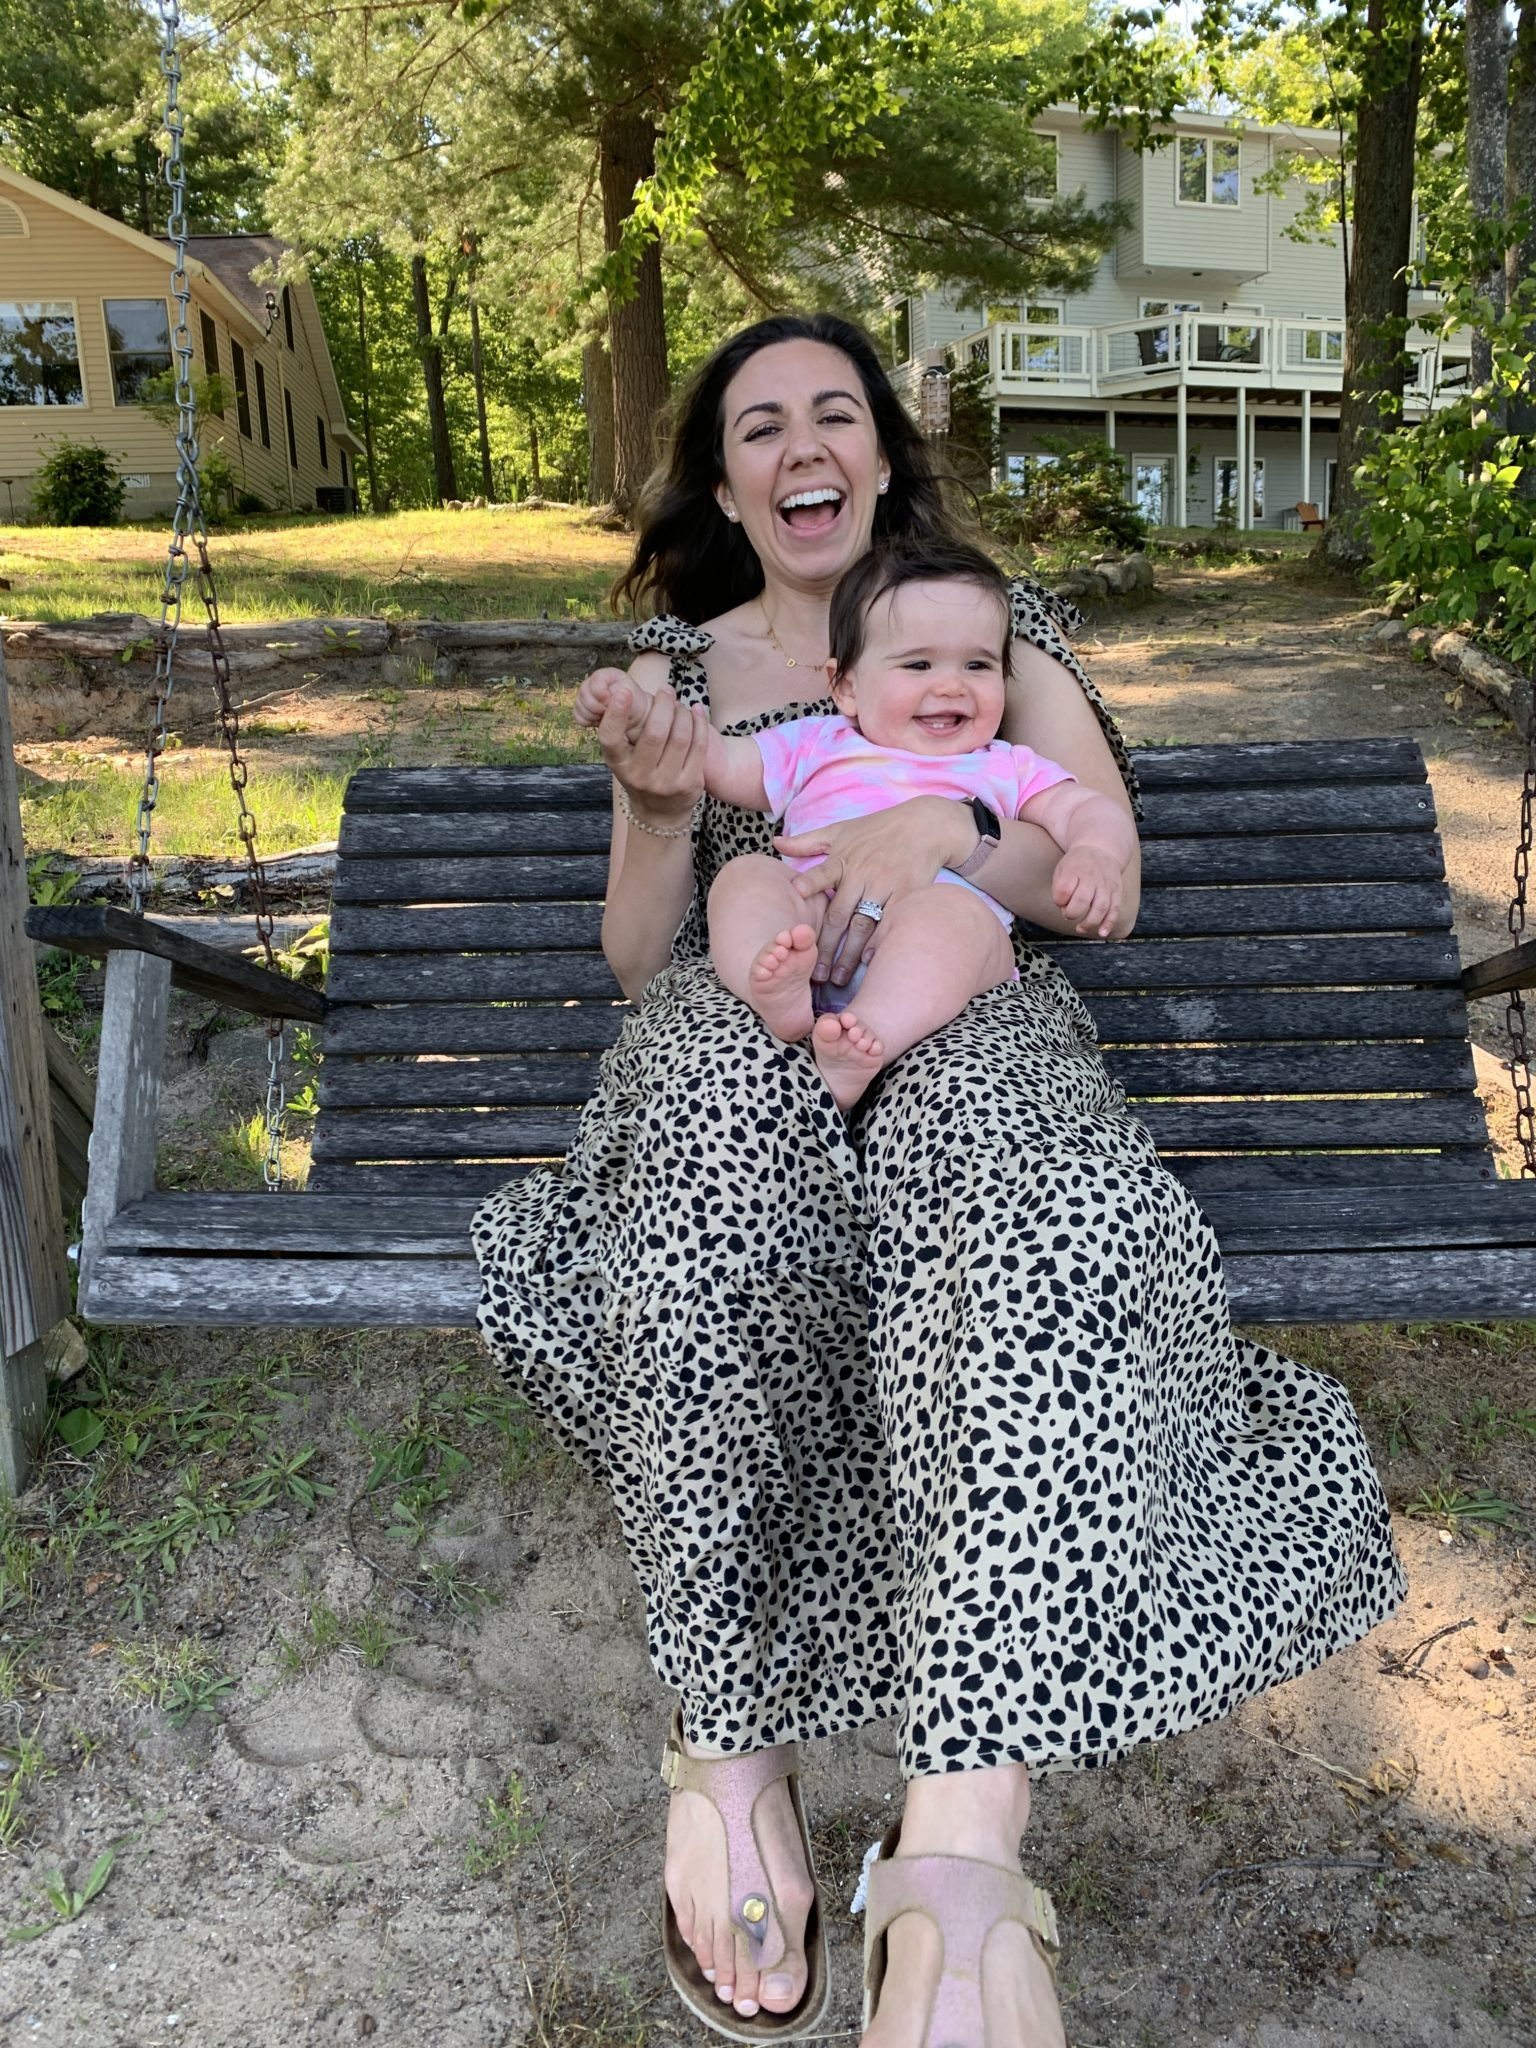 Traverse City by popular Chicago travel blog, Glass of Glam: image of a mom holding her baby daughter on a bench swing.